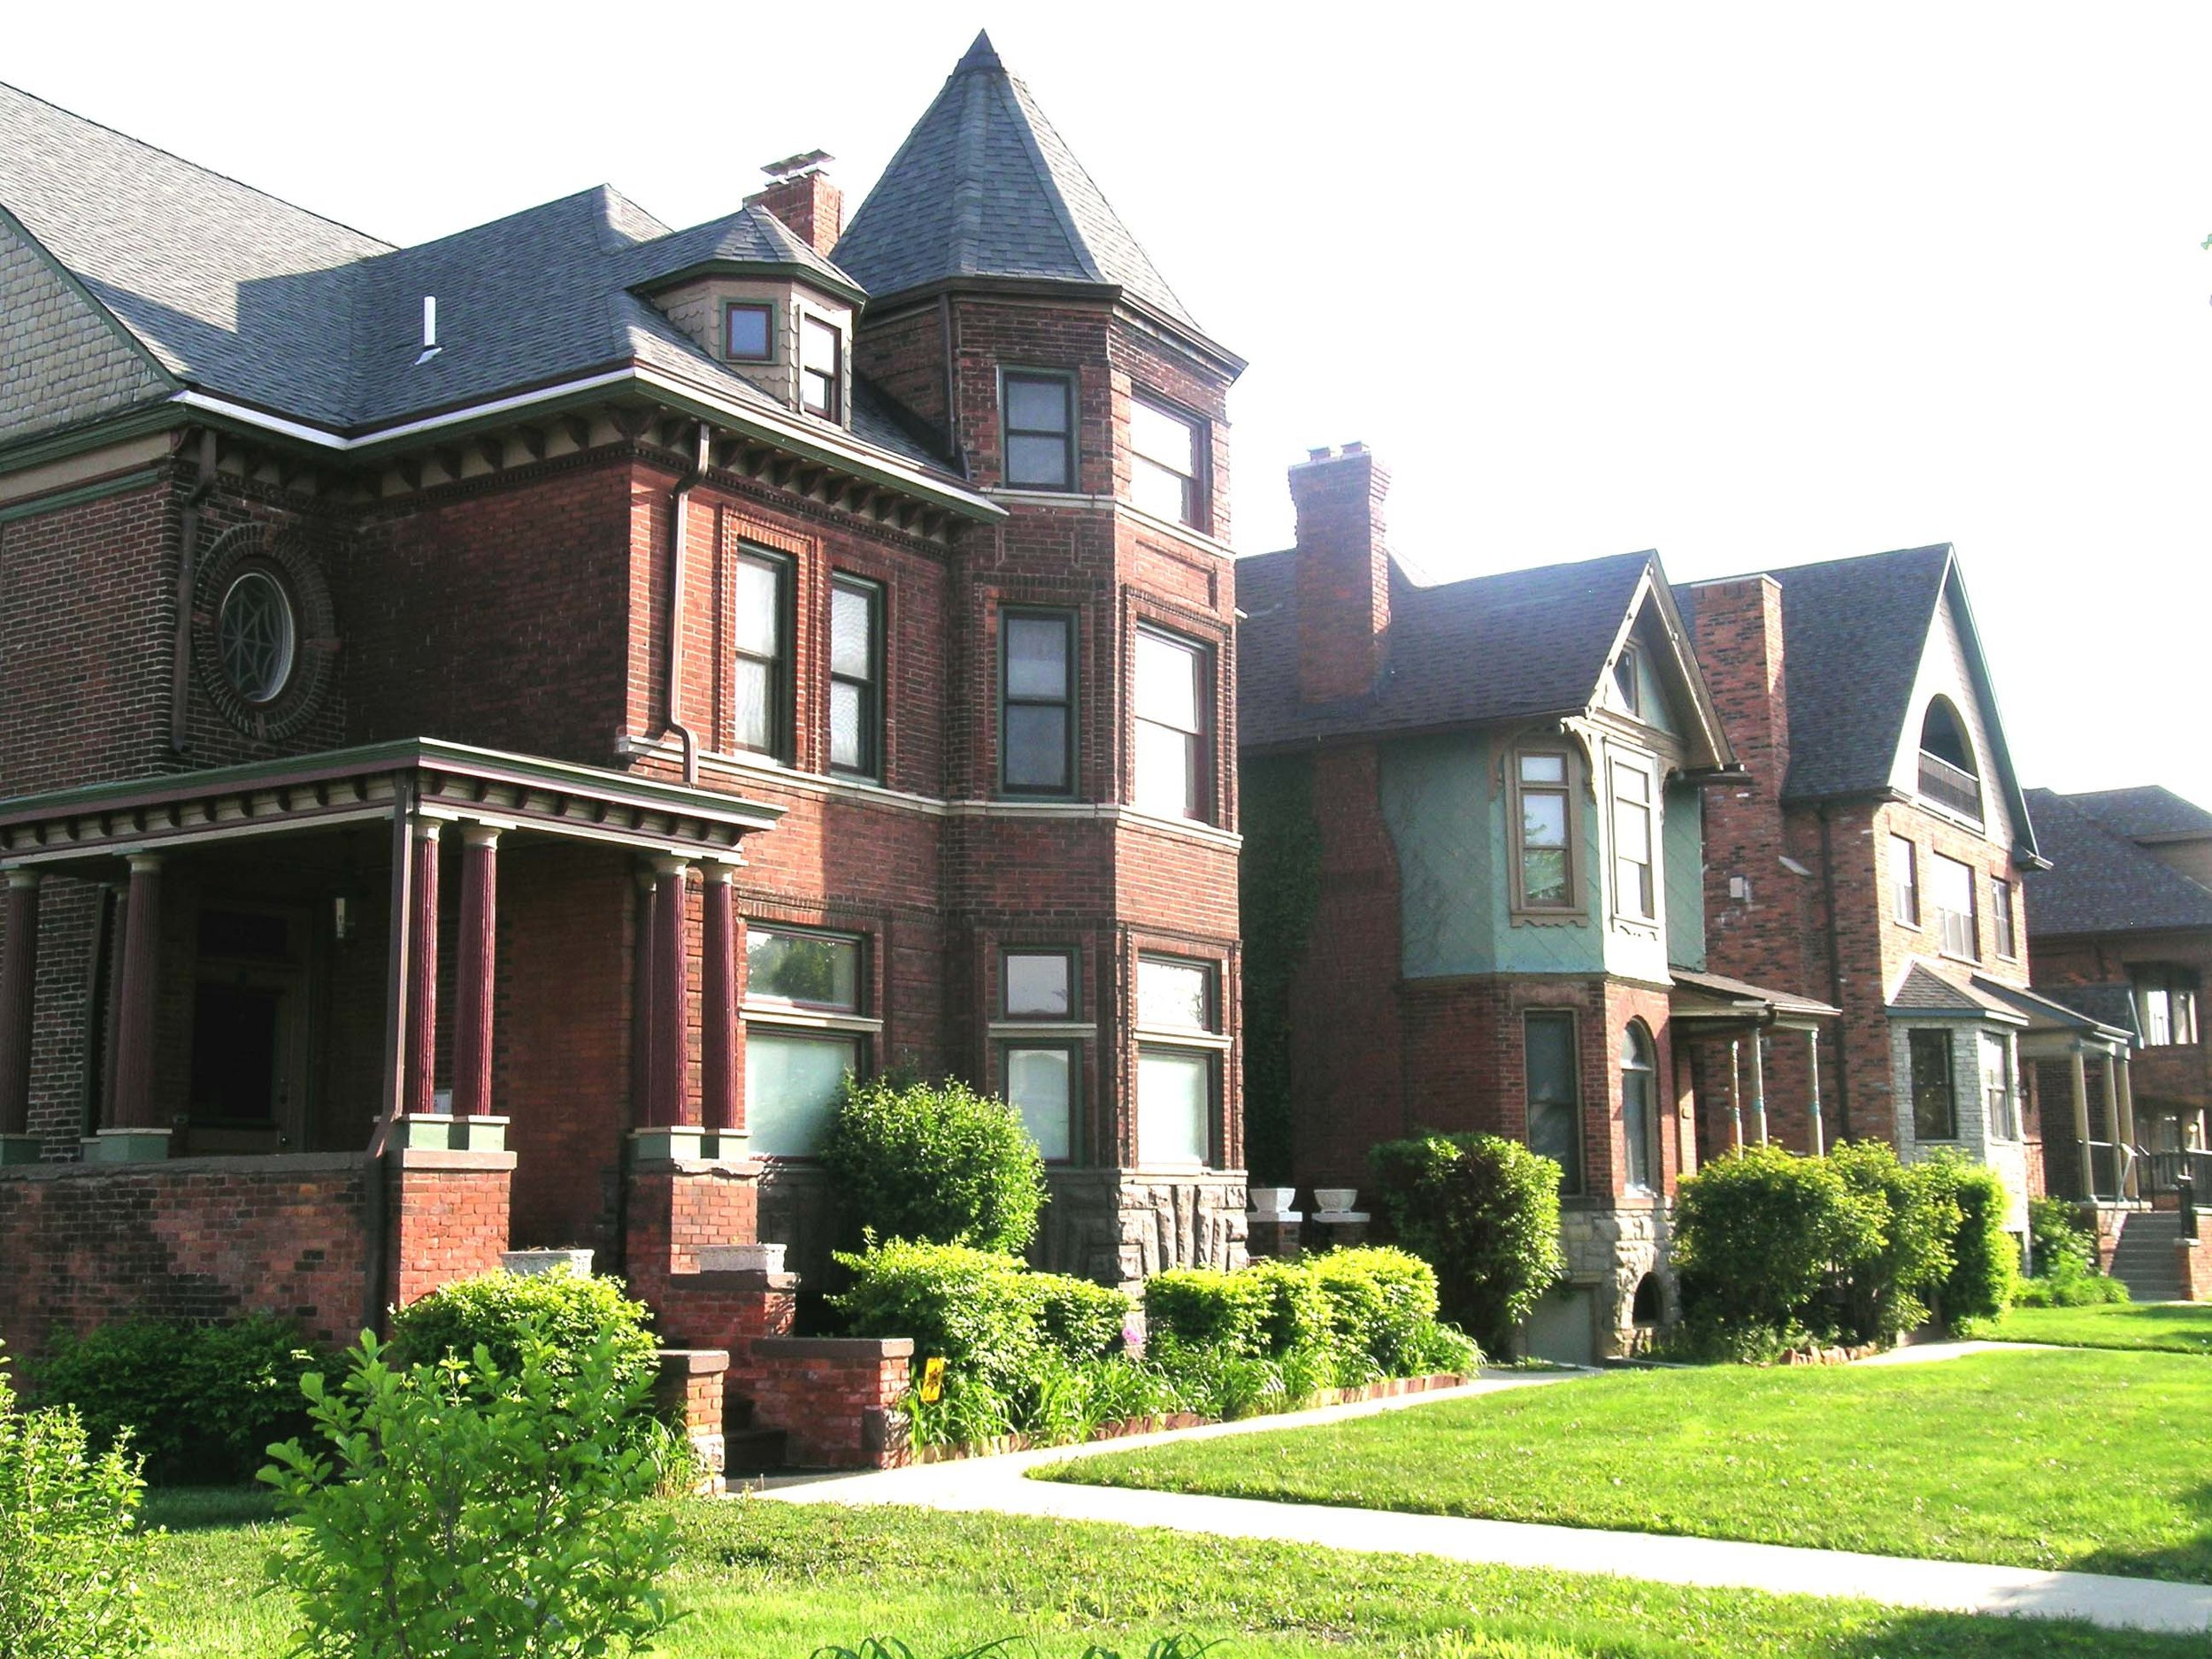 East_Ferry_Avenue_Historic_District_1_-_Detroit_Michigan_tours.jpg